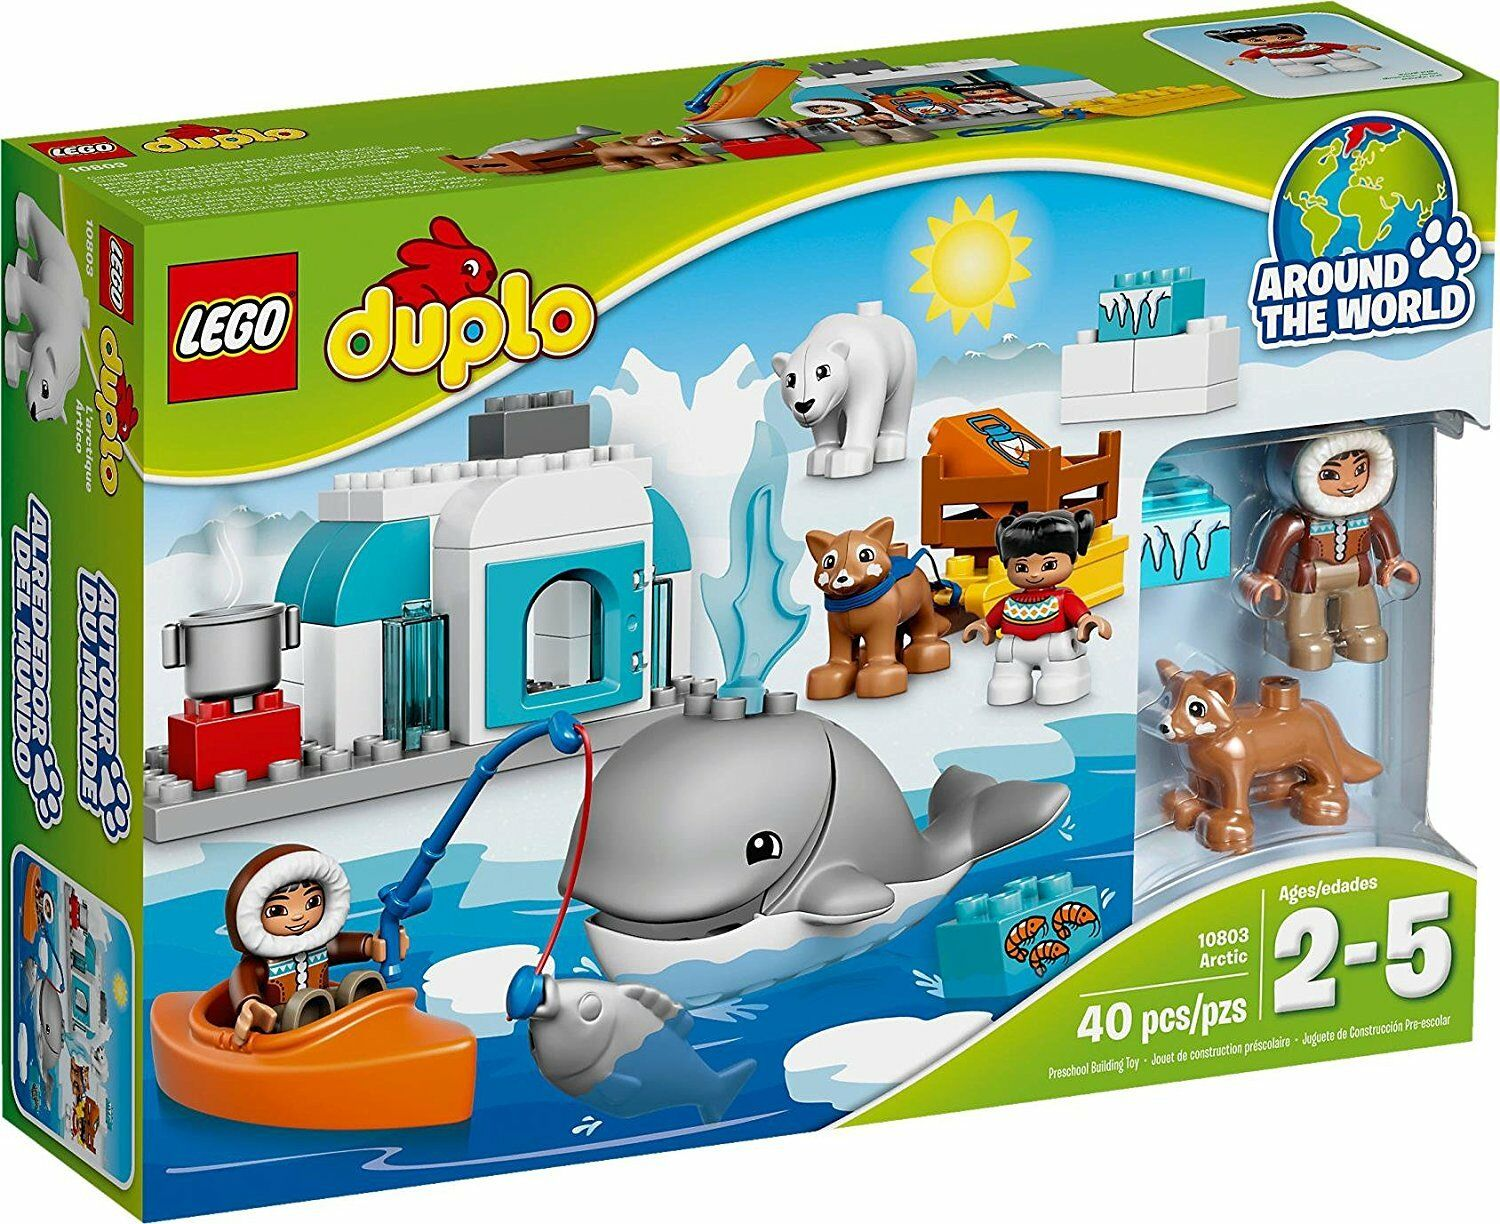 Lego Duplo 10803 ARCTIC wildlife Whale Polar Bear Husky Dog Kayak Fish NEW